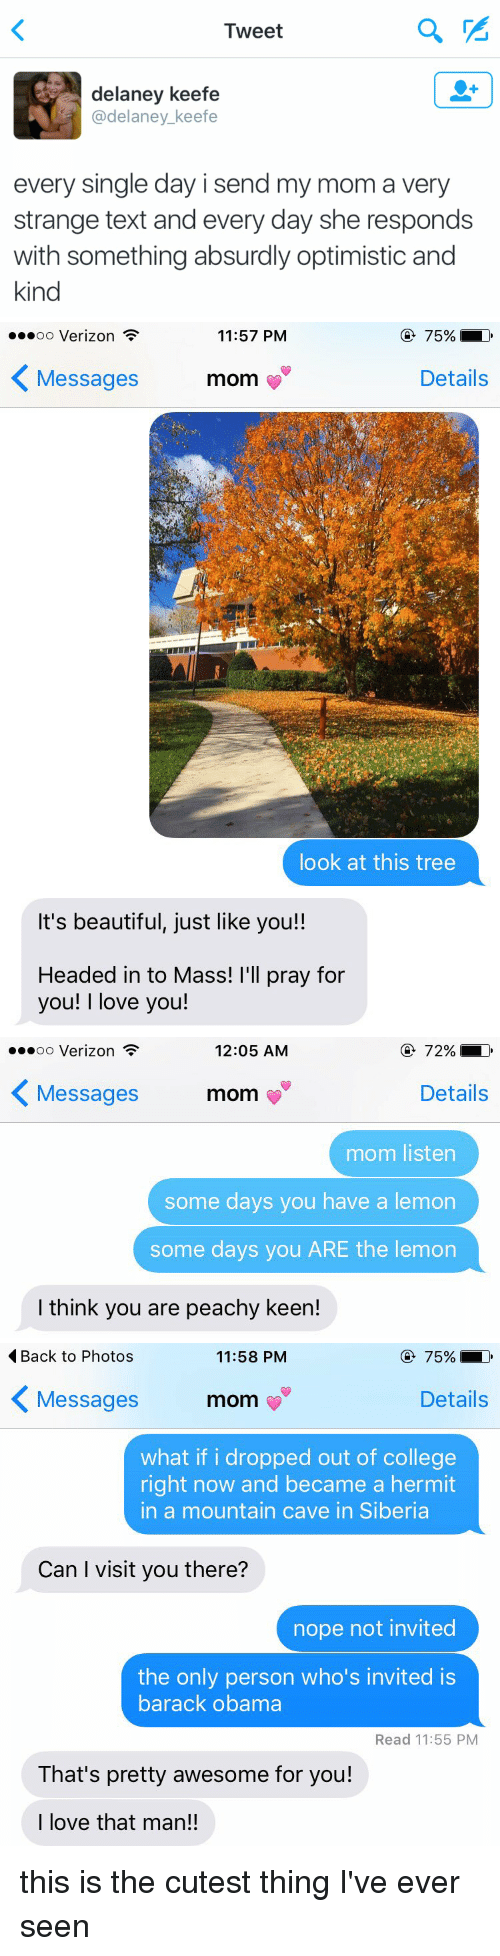 Beautiful, College, and Head: Tweet  delaney keefe  @delaney keefe  every single day i send my mom a very  strange text and every day she responds  with something absurdly optimistic and  kind   75%  LD  11:57 PM  oo Verizon  Details  Messages  mom  look at this tree  It's beautiful, just like you!!  Headed in to Mass!  I'll pray for  you!  I love you!   72%,  LD  12:05 AM  oo Verizon  Details  Messages  mom  mom listen  some days you have a lemon  some days you ARE the lemon  l think you are peachy keen!   Back to Photos  75%,  LD  11:58 PM  K Details  Messages  mom  what if i dropped out of college  right now and became a hermit  in a mountain cave in Siberia  Can I visit you there?  nope not invited  the only person who's invited is  barack obama  Read 11:55 PM  That's pretty awesome for you!  I love that man!! this is the cutest thing I've ever seen